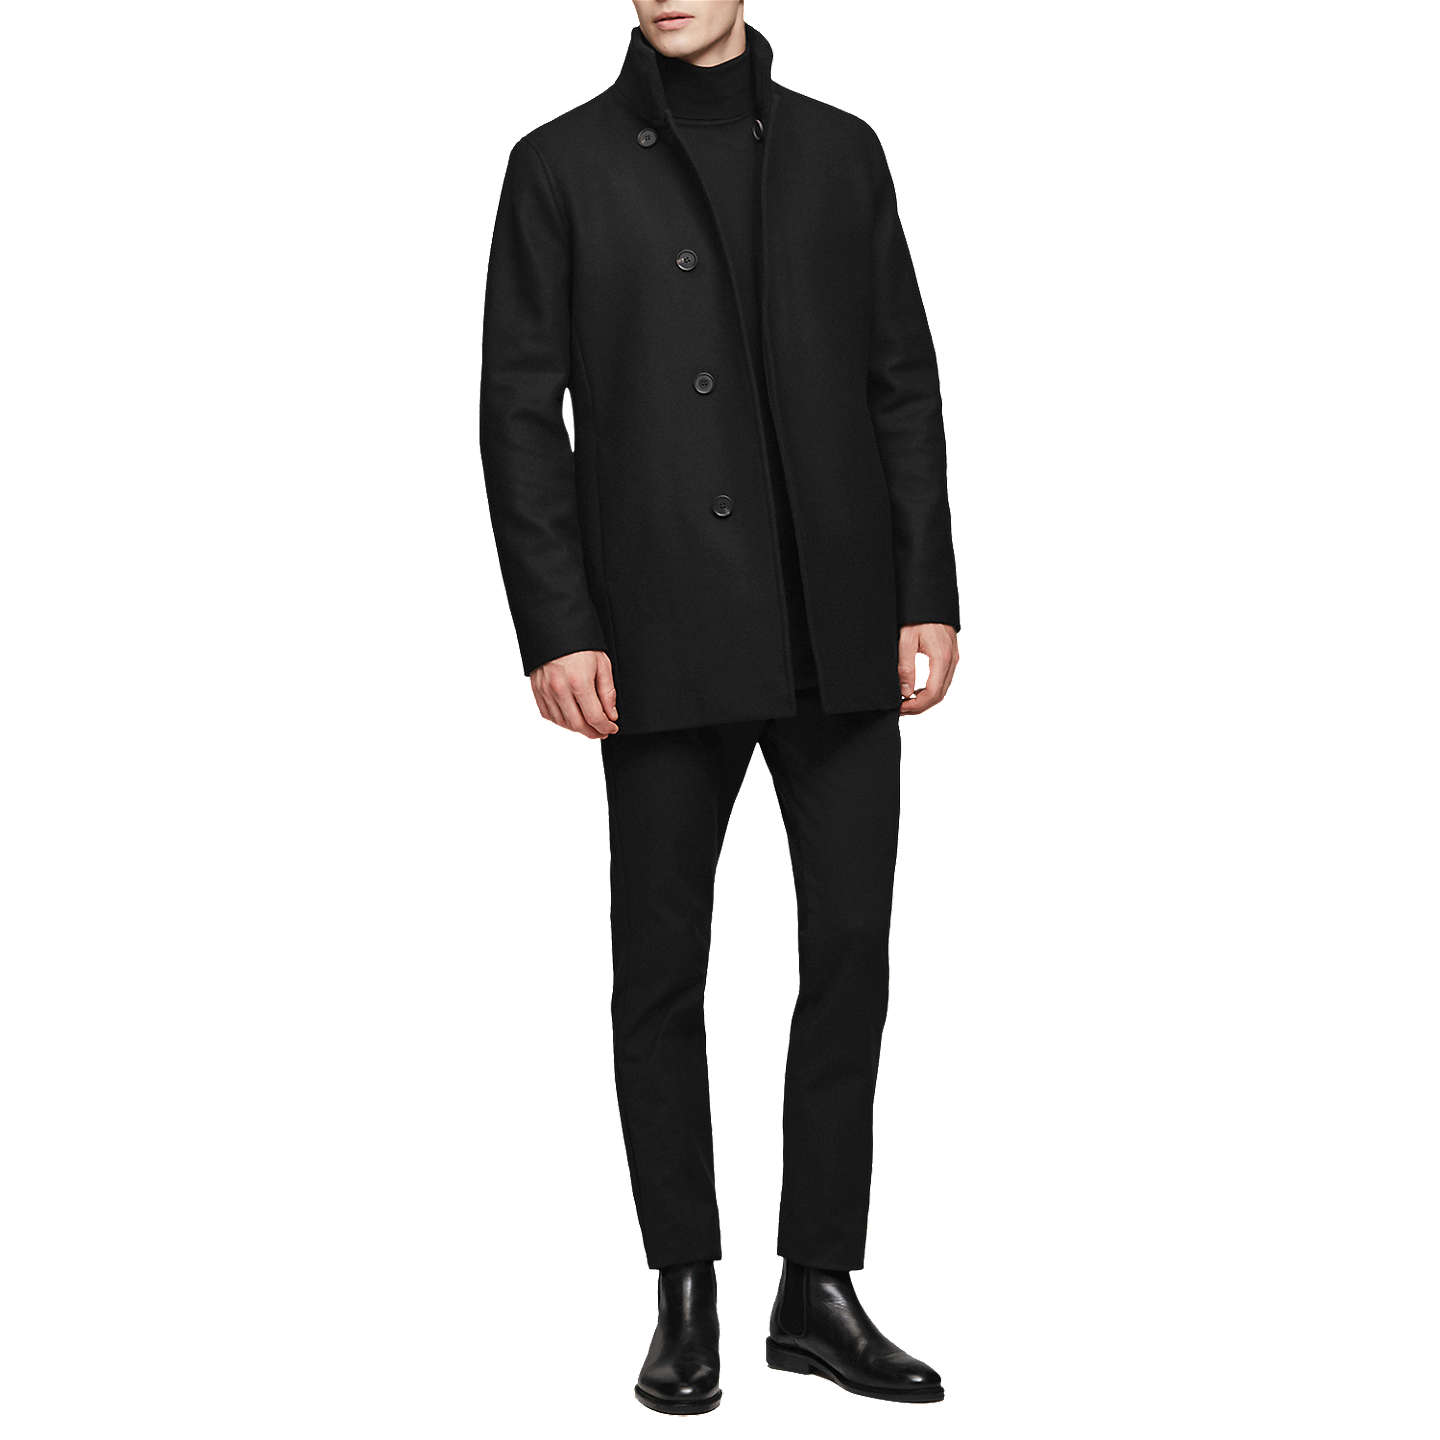 BuyReiss Curraghmore Funnel Collar Jacket, Black, XS Online at johnlewis.com